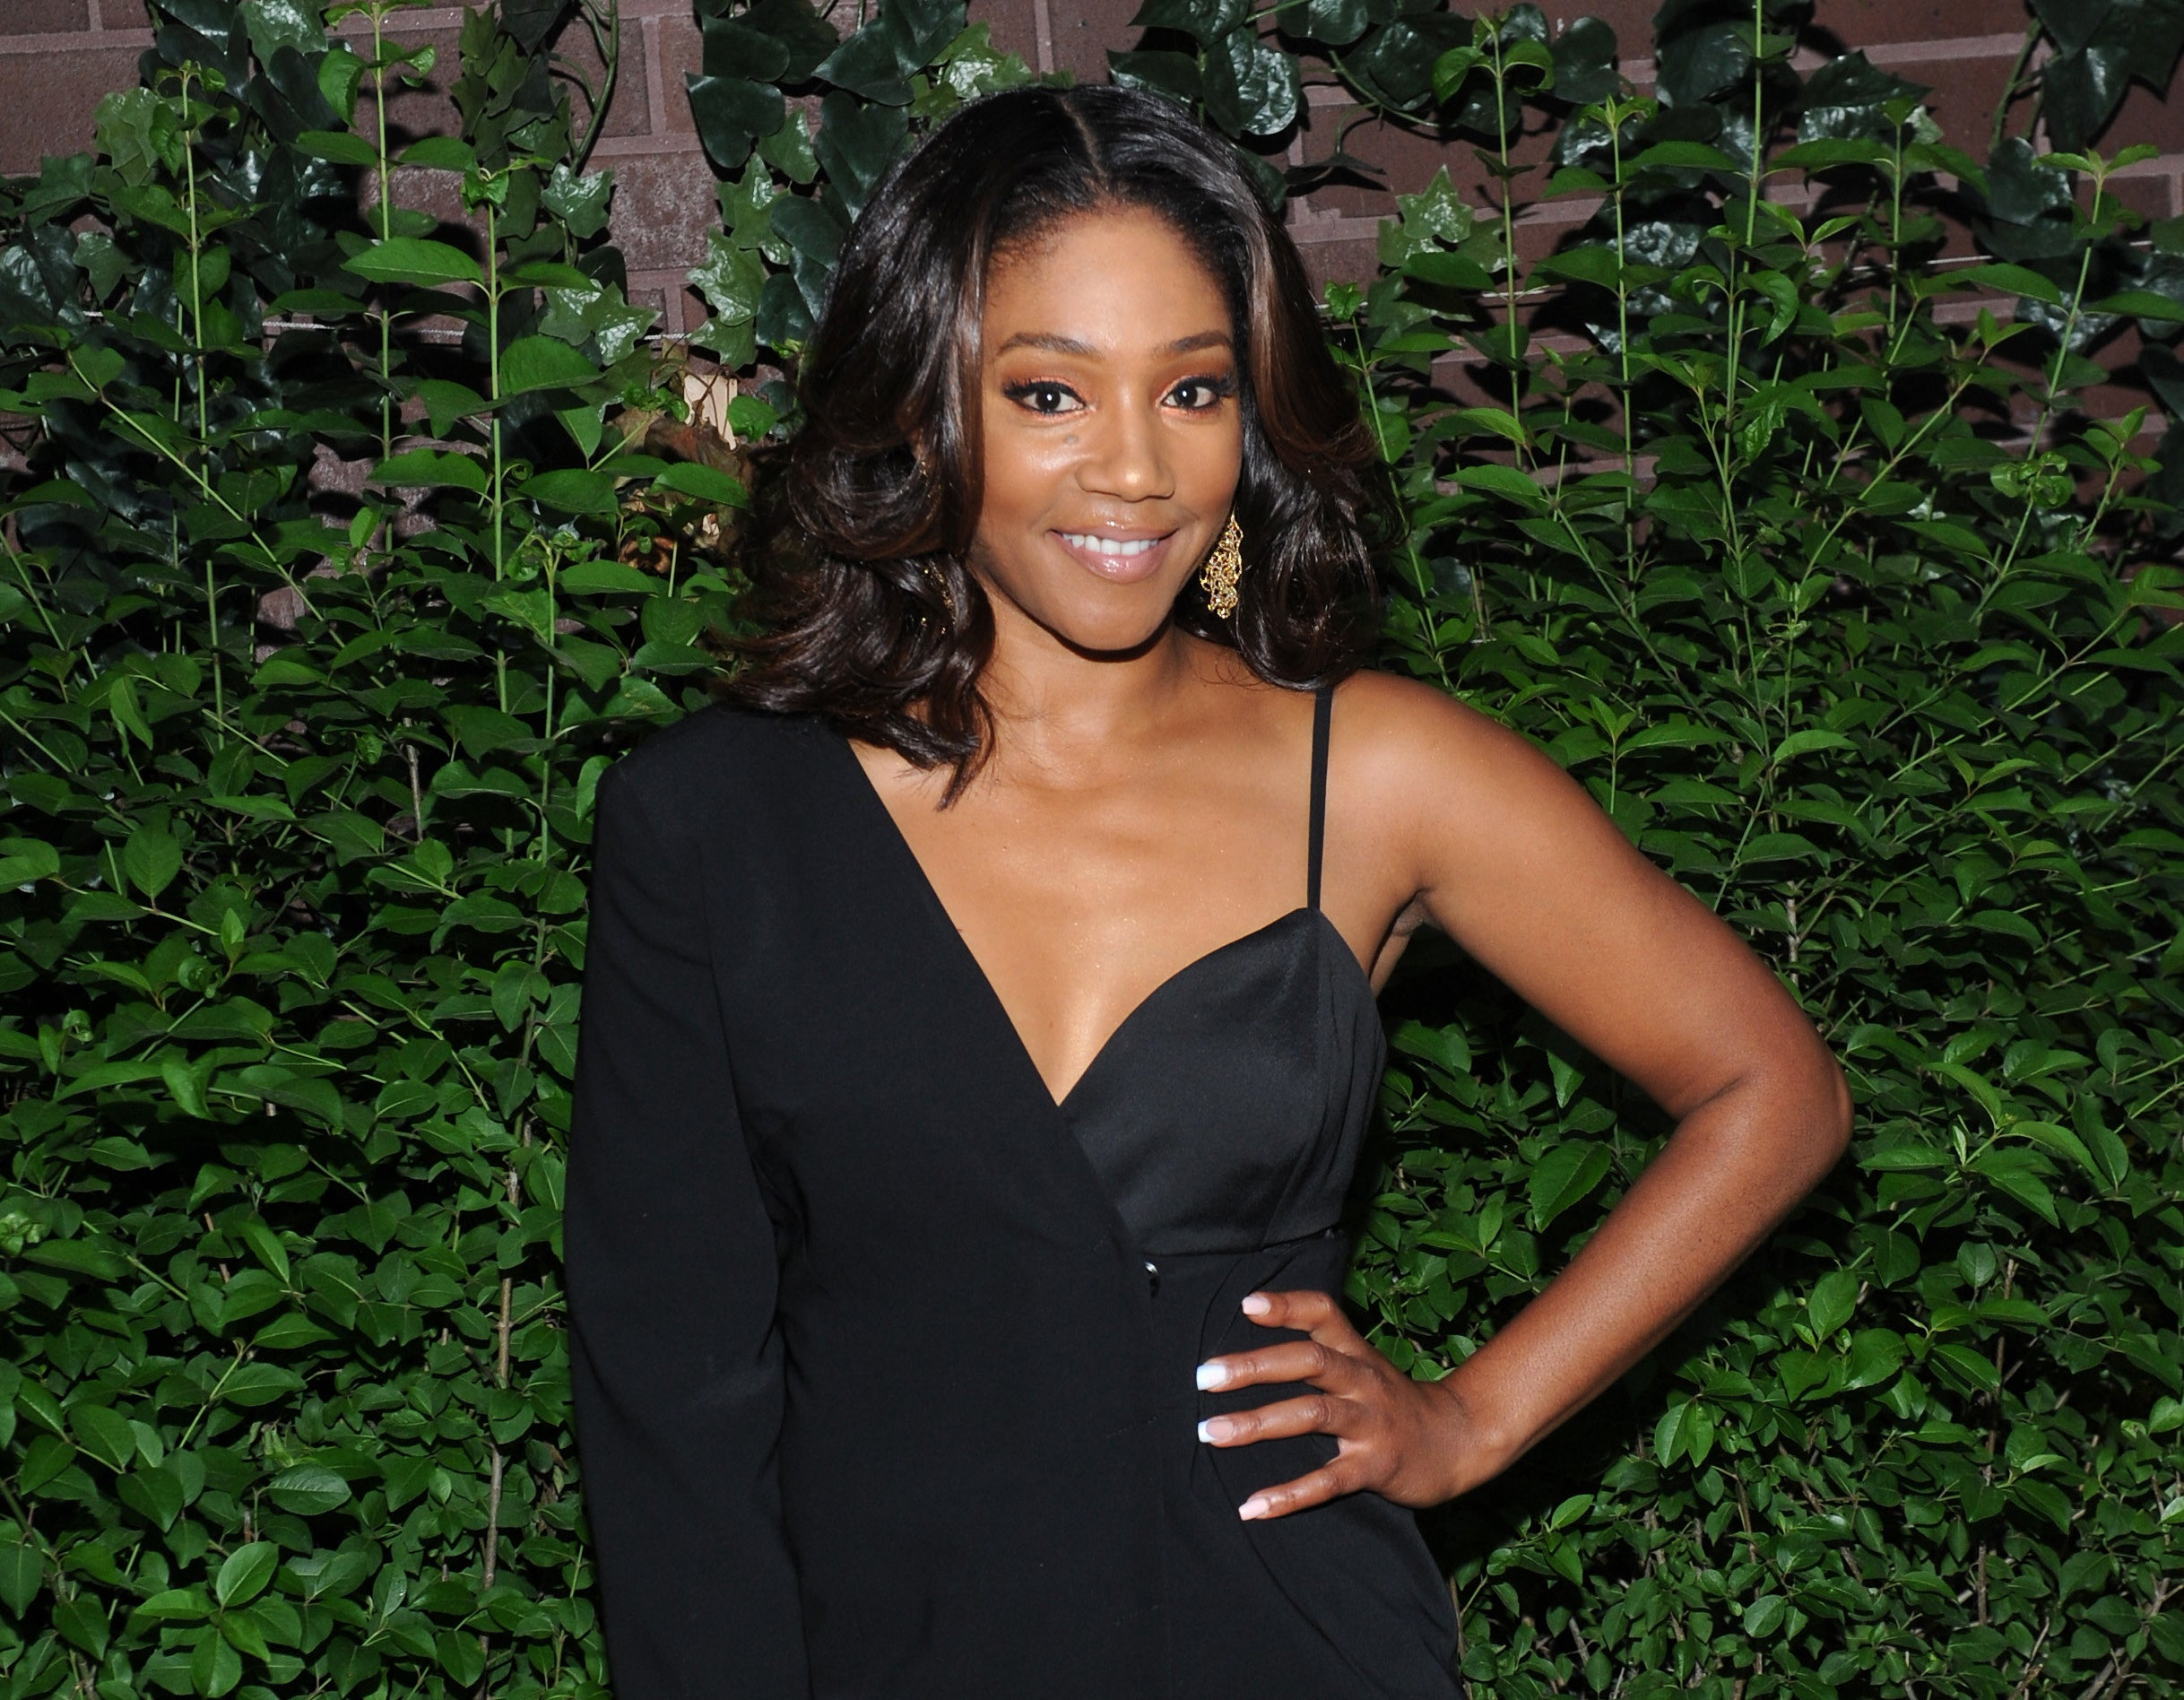 Tiffany Haddish photographed at an event